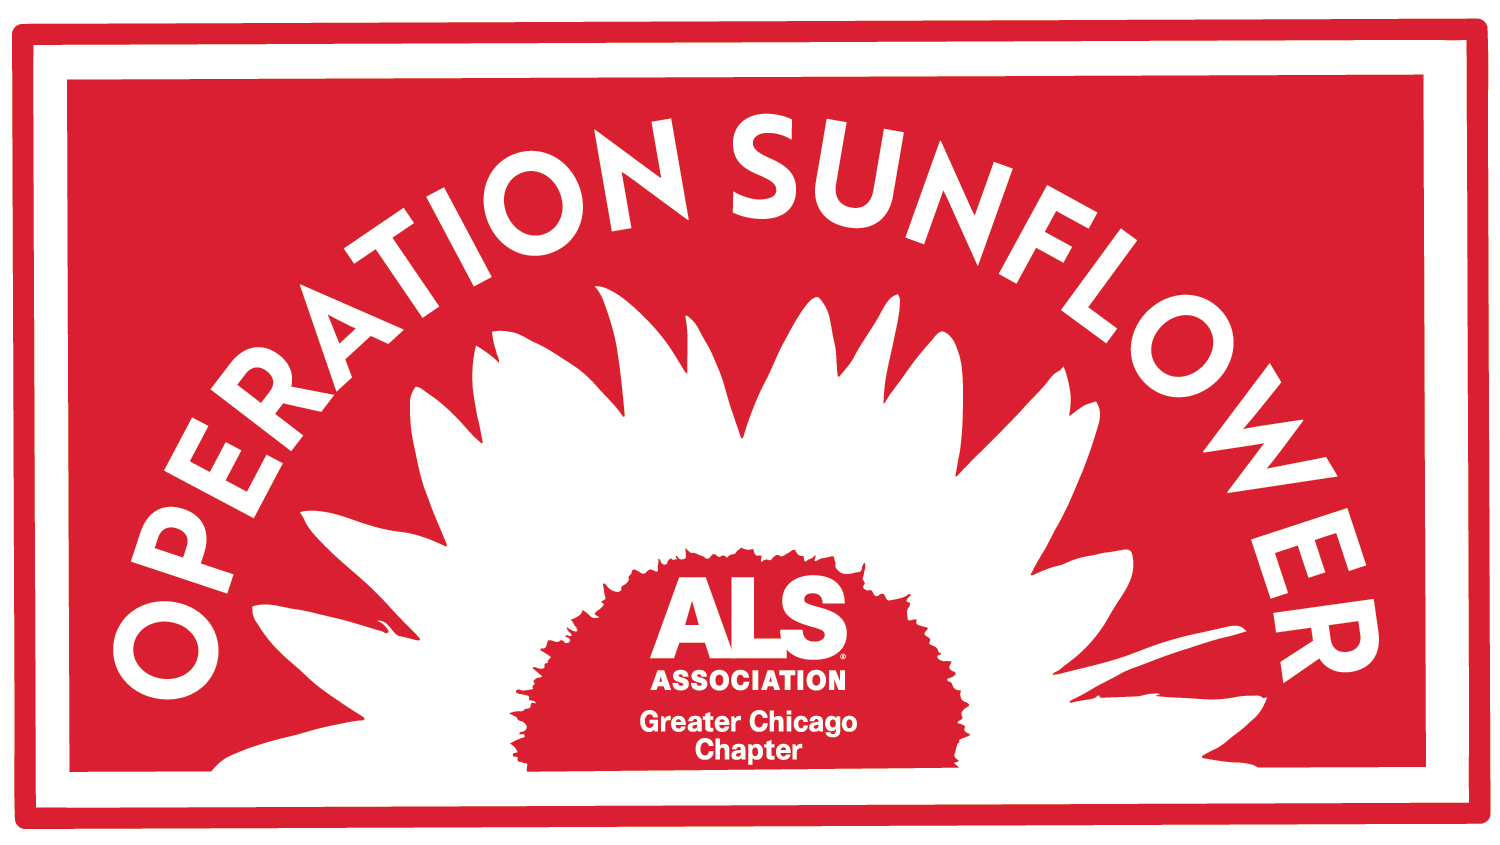 Operation Sunflower Logo with Chapter Name.png